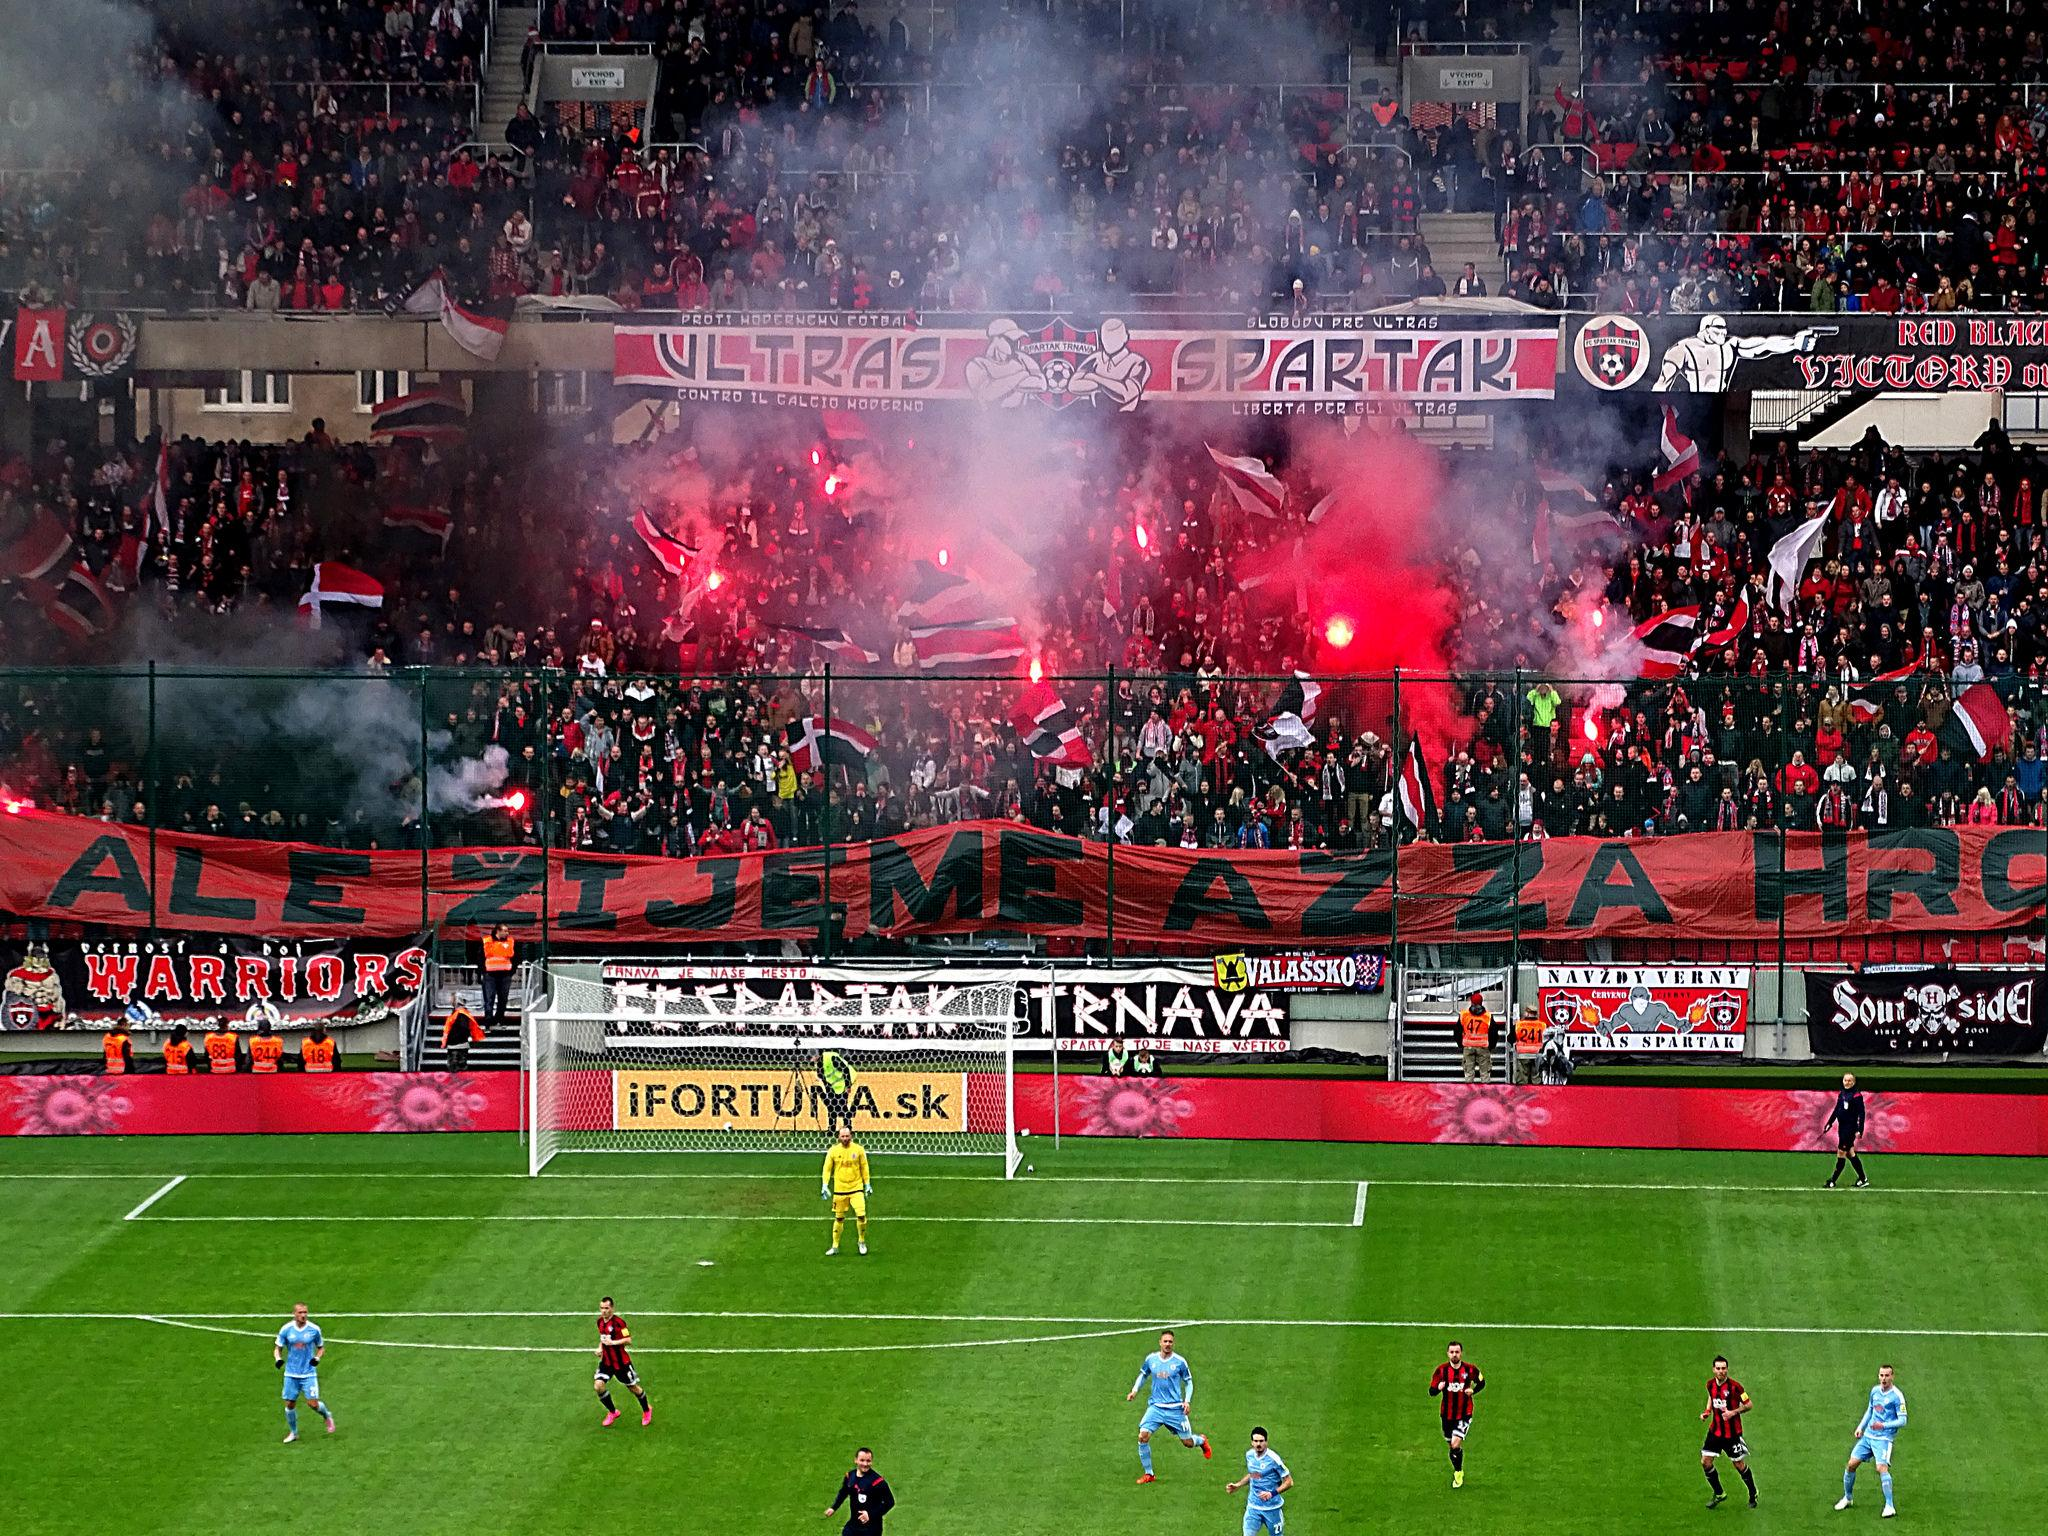 The World's newest photos of spartak and trnava